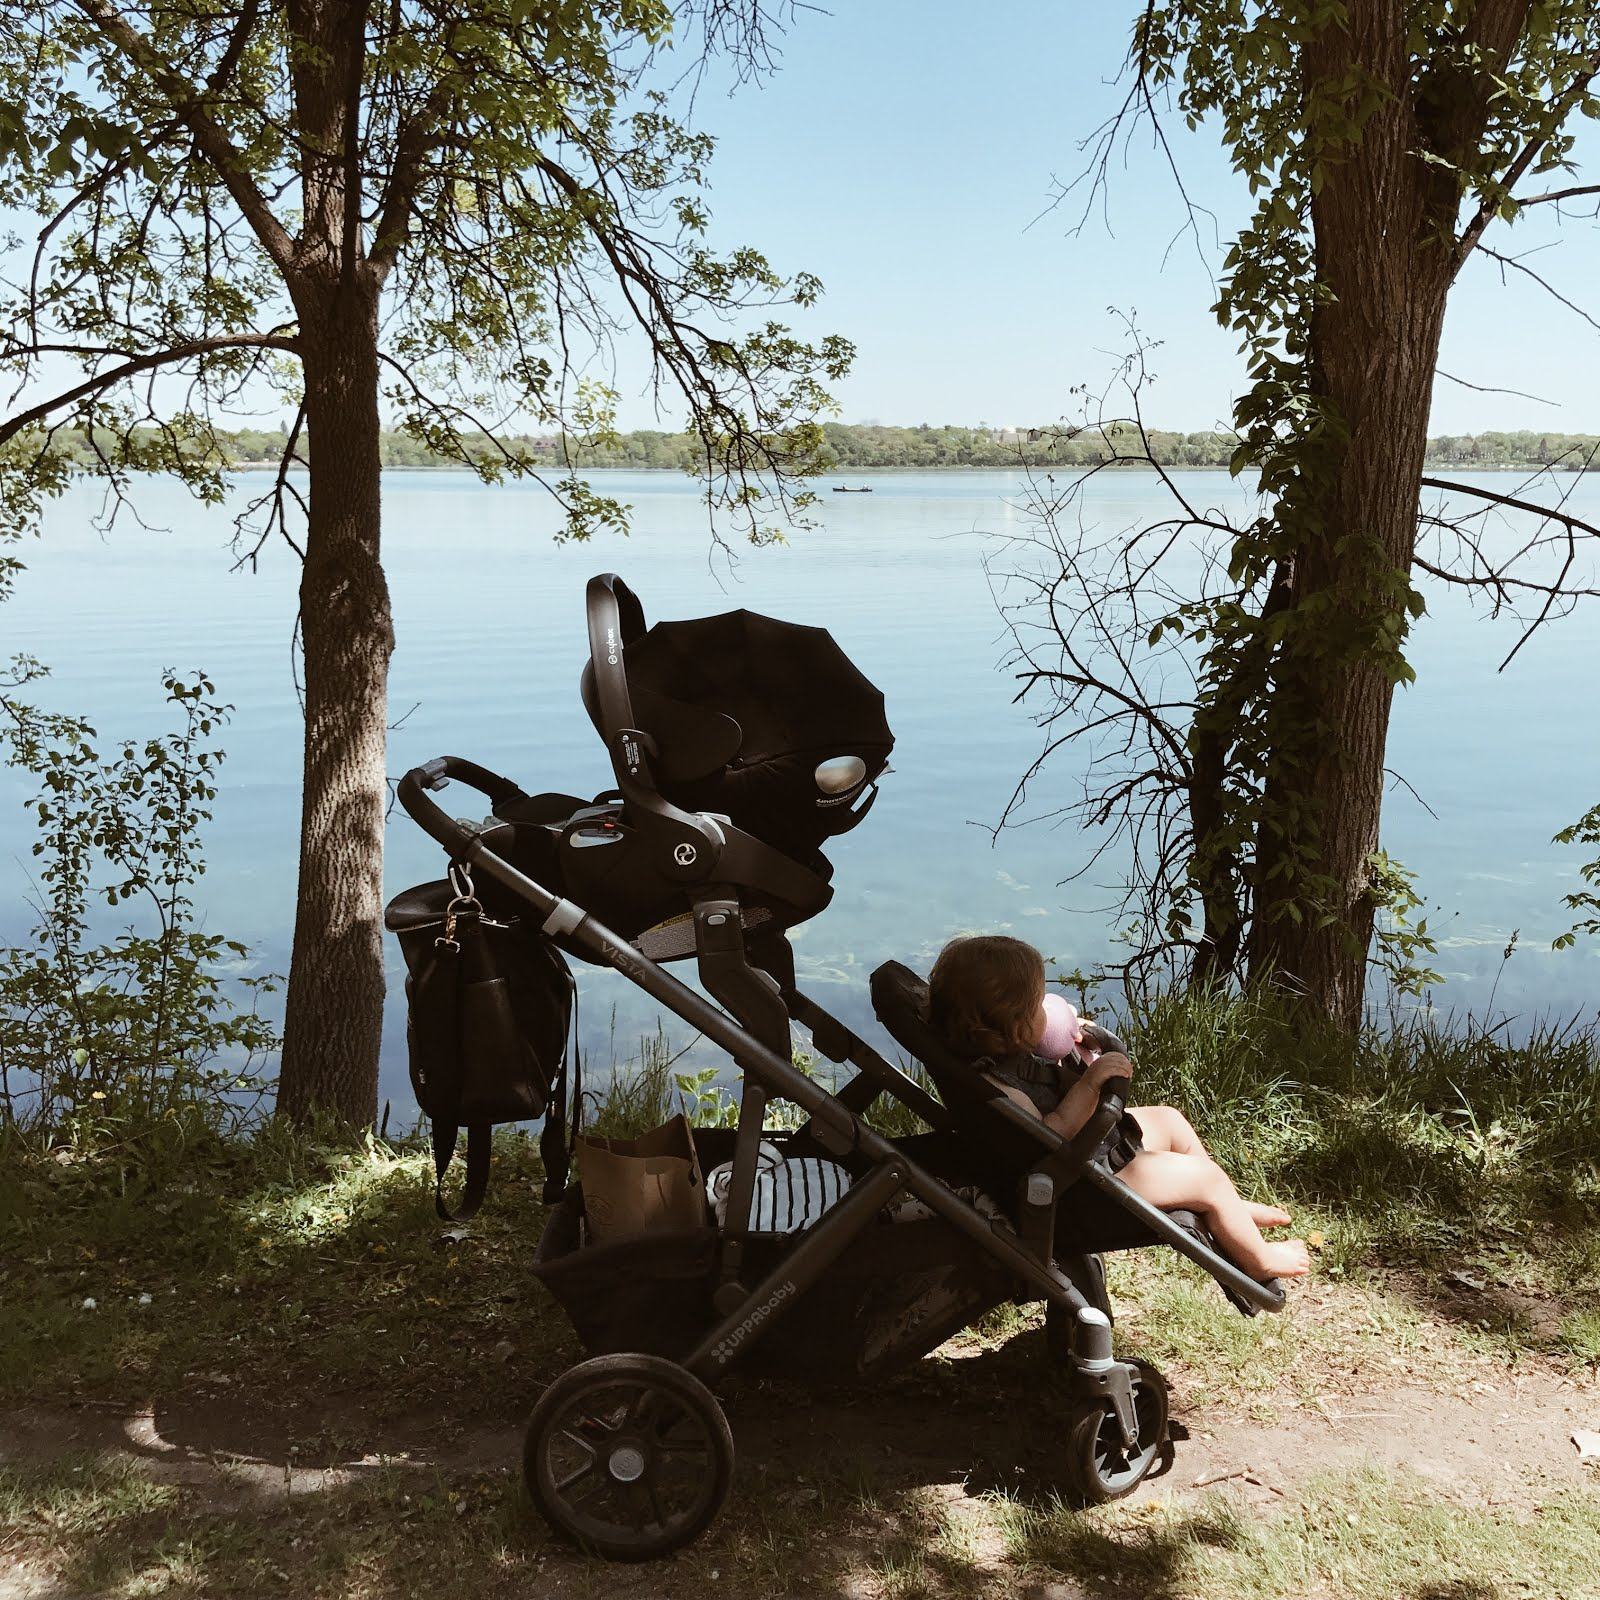 Products Weve Added To Our Lineup Is Cybex Cloud Q Infant Car Seat And I Wanted Share All That We Love About It In A Best Of The Nest Post